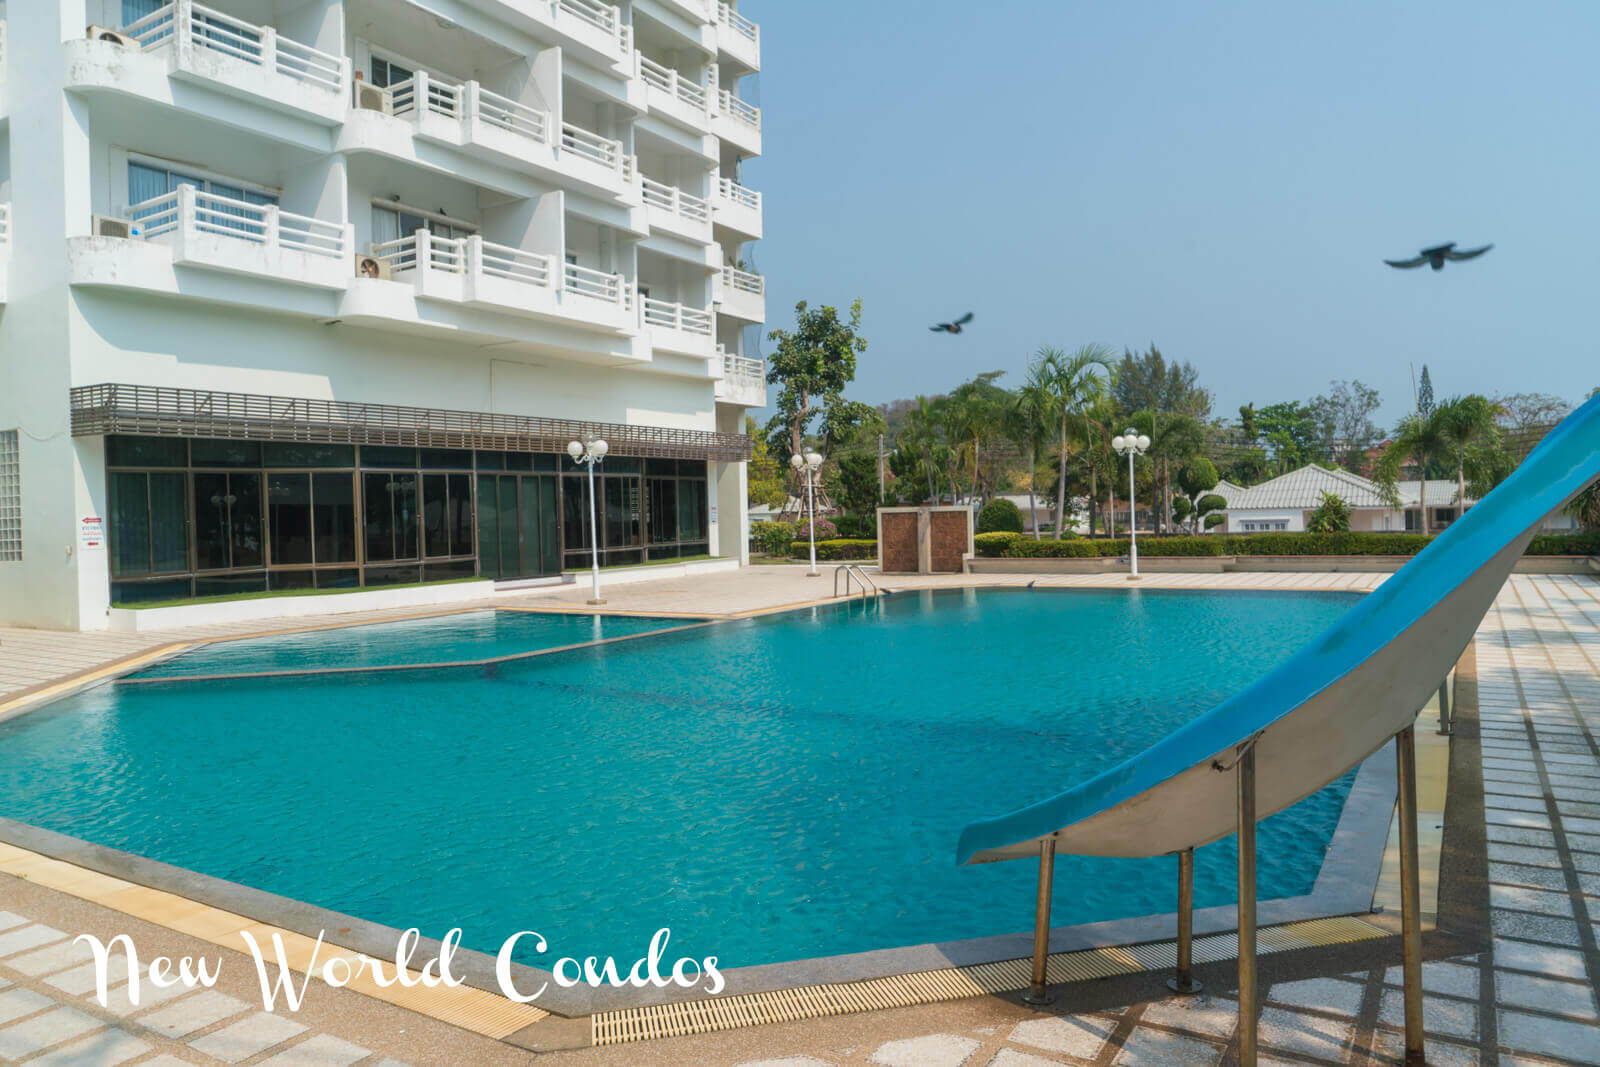 Beautiful pool at New World Condos on Mae Rumphueng Beach near Ban Phe, Rayong, Thailand